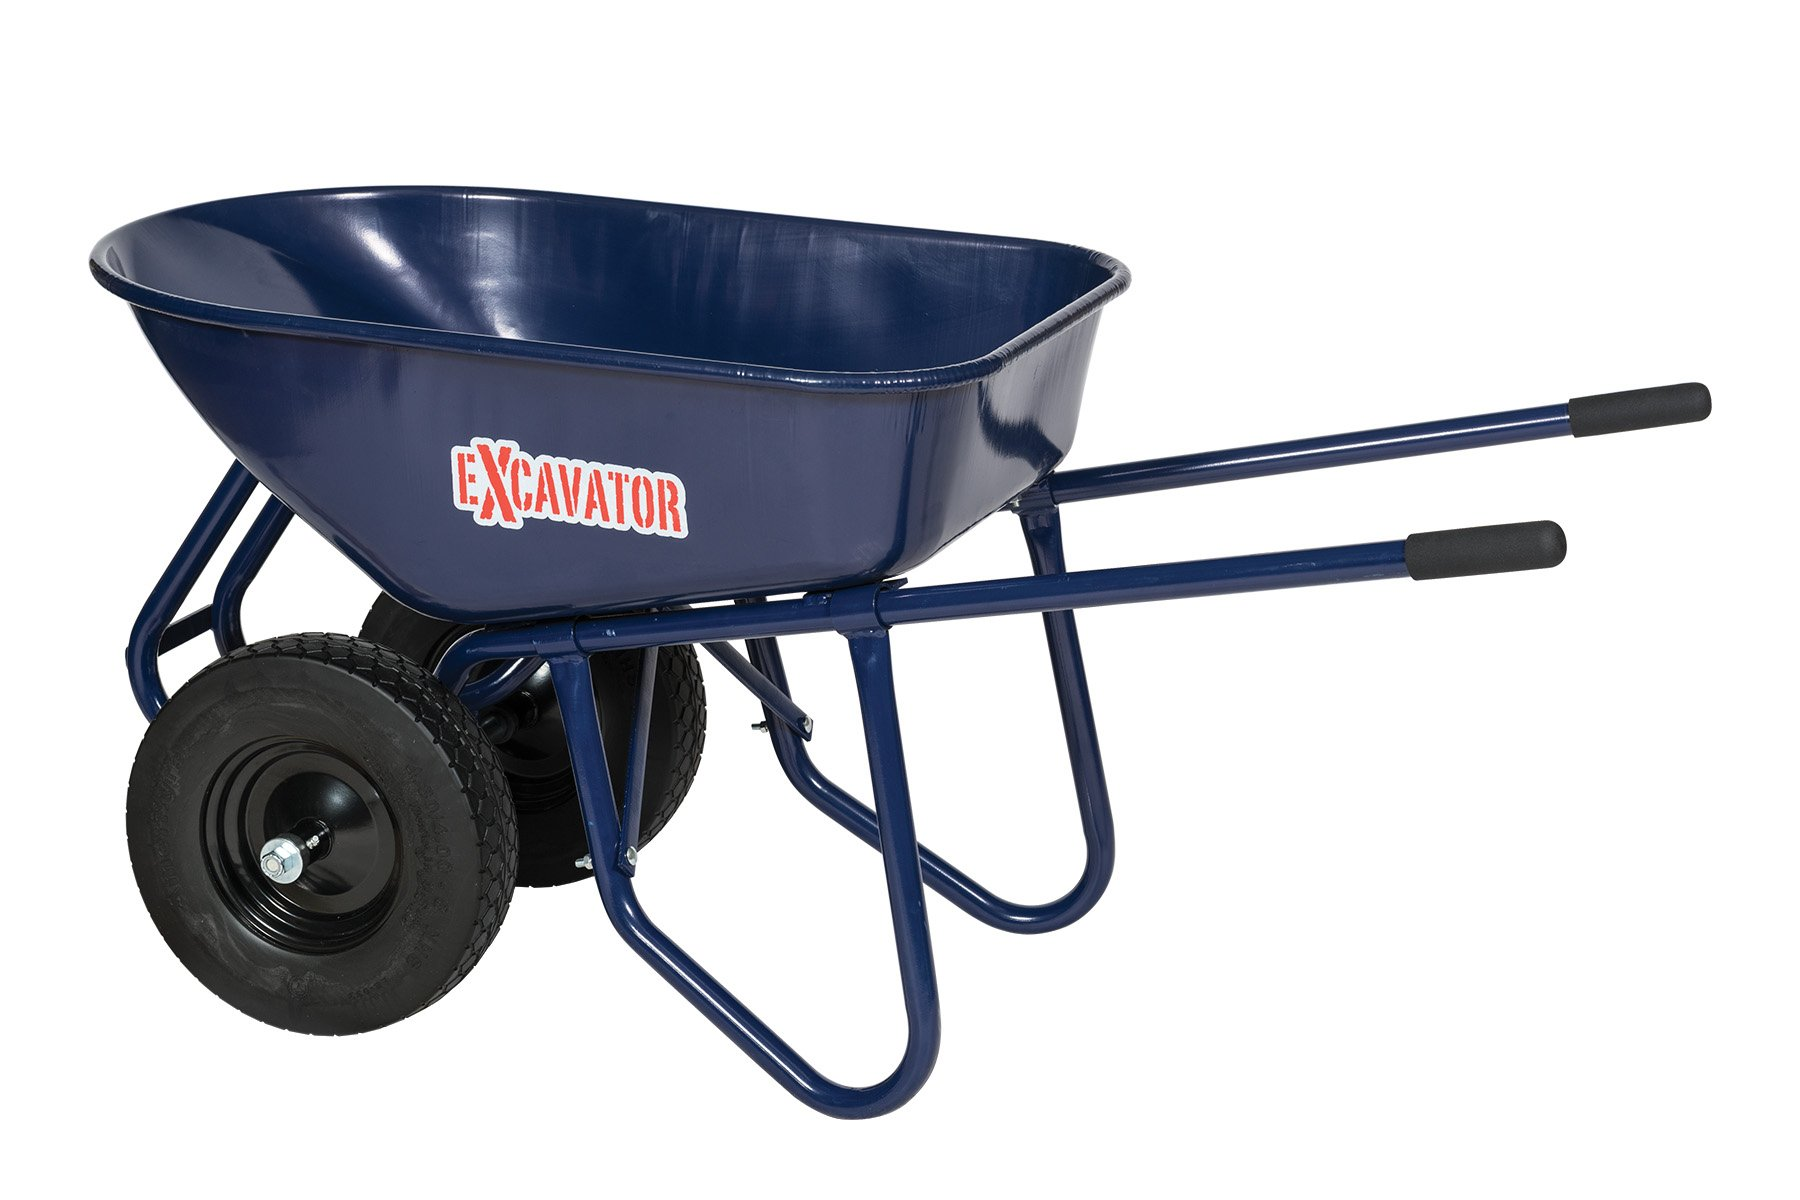 Seymour 85733 Excavator, 6 cu. ft. Wheelbarrow, Steel Tray and Handles, Dual Flat-Free Knobby Tires